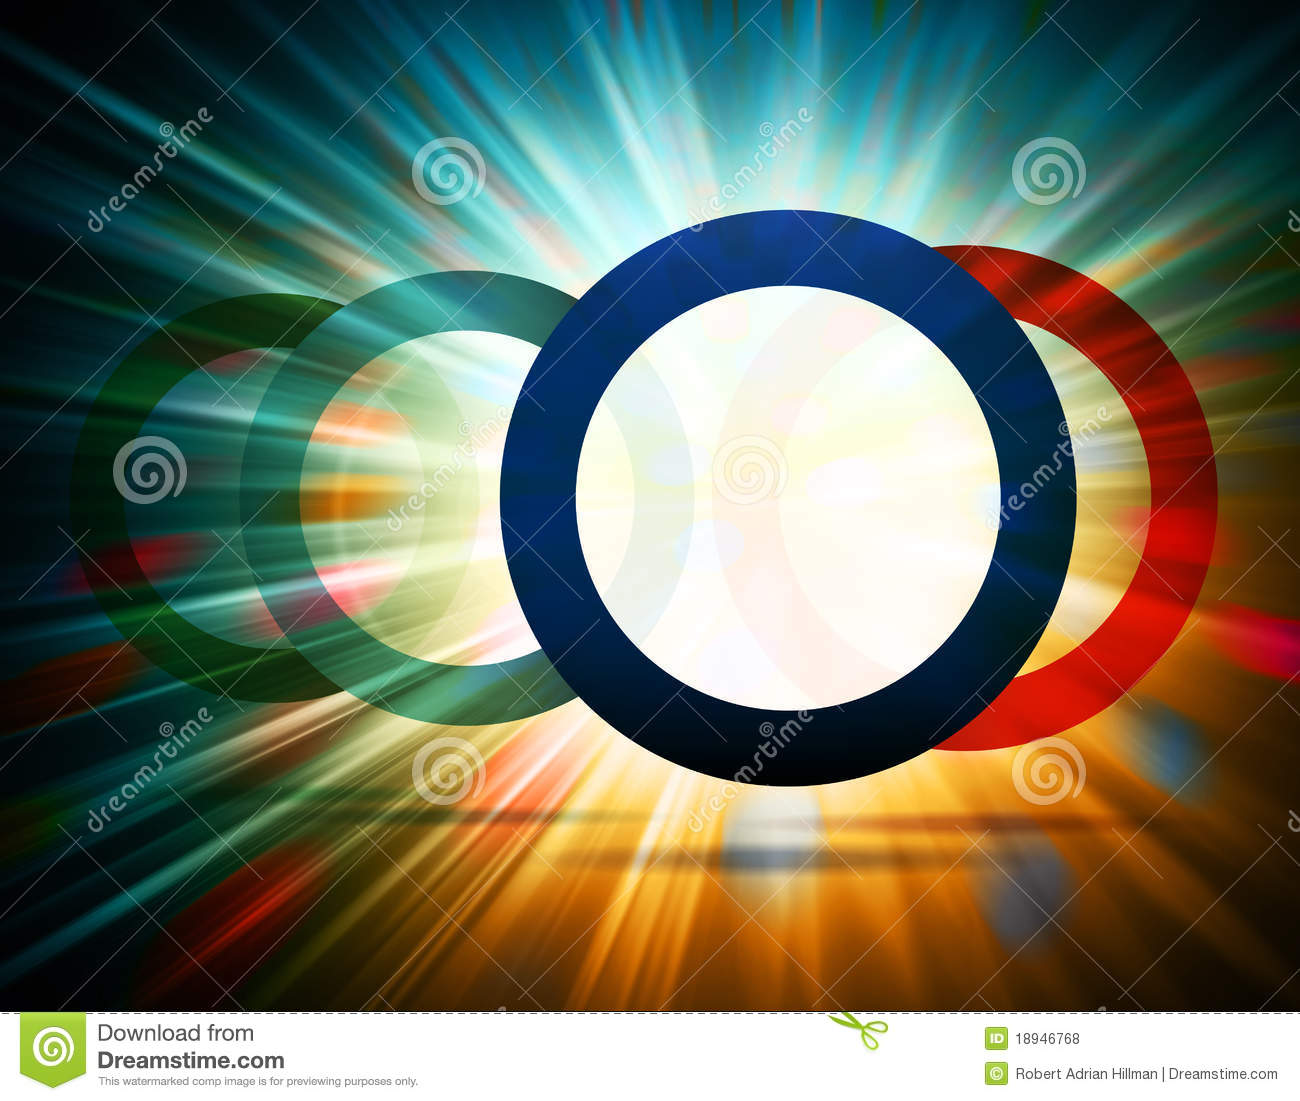 Abstract Background Of A Colorful Burst Of Light Through Circles